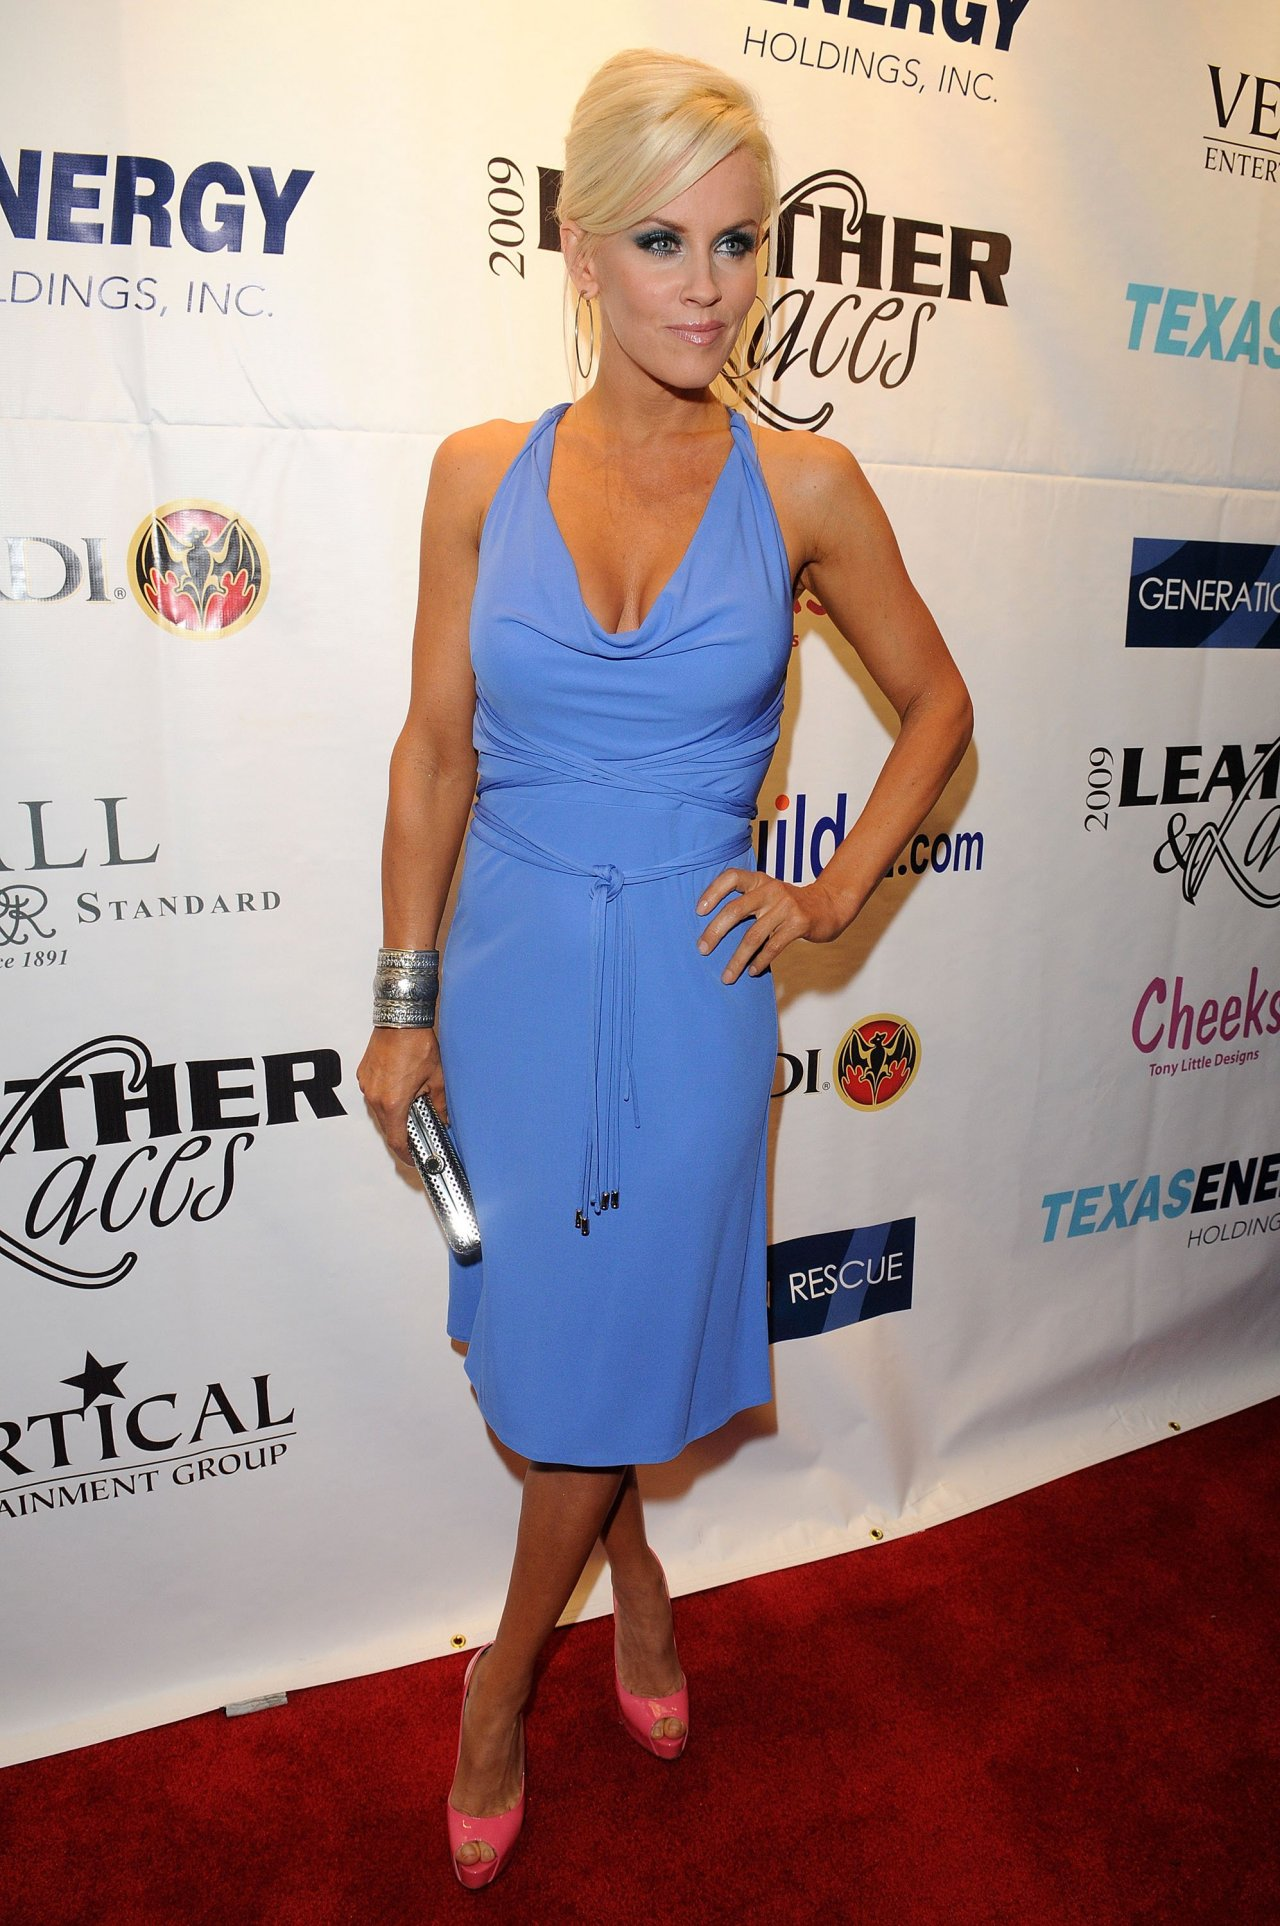 Jenny mccarthy wallpapers 73728 top rated jenny mccarthy photos